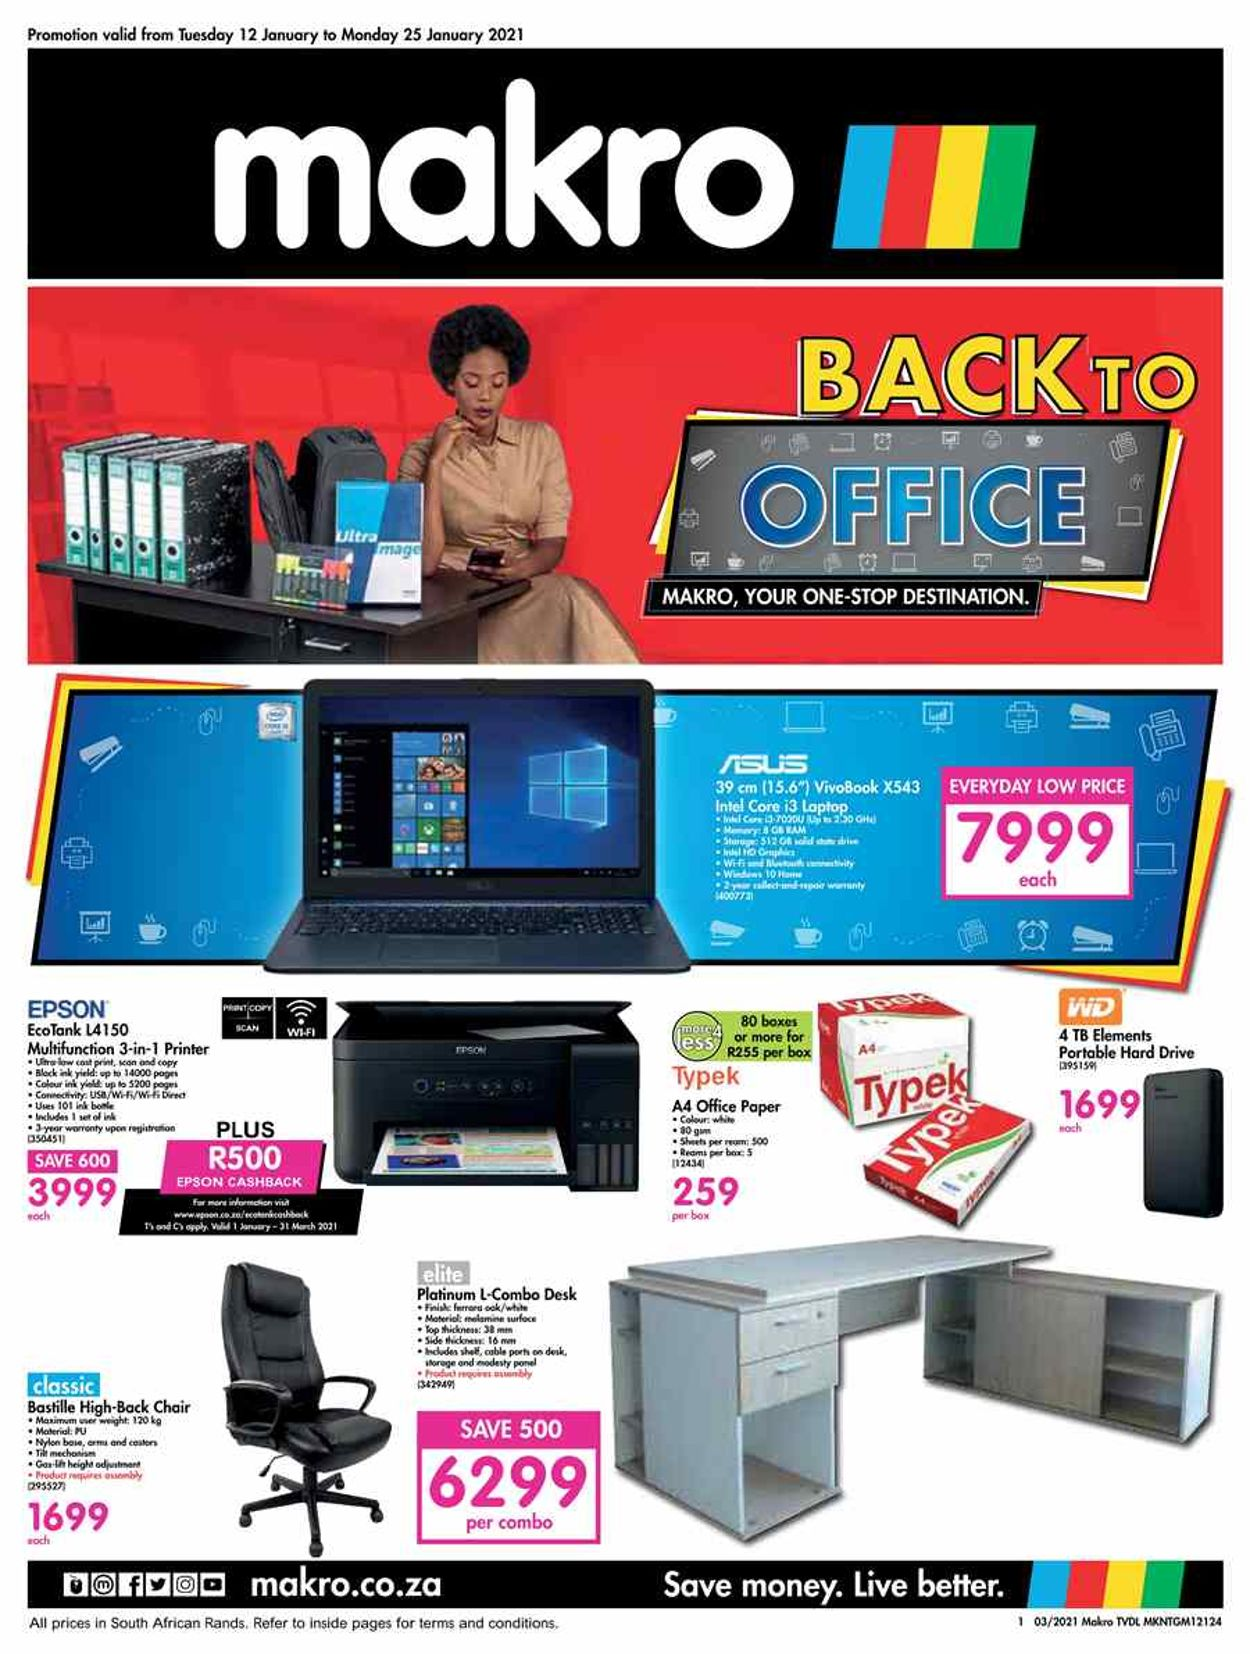 Makro Back to Office 2021 Catalogue - 2021/01/12-2021/01/25